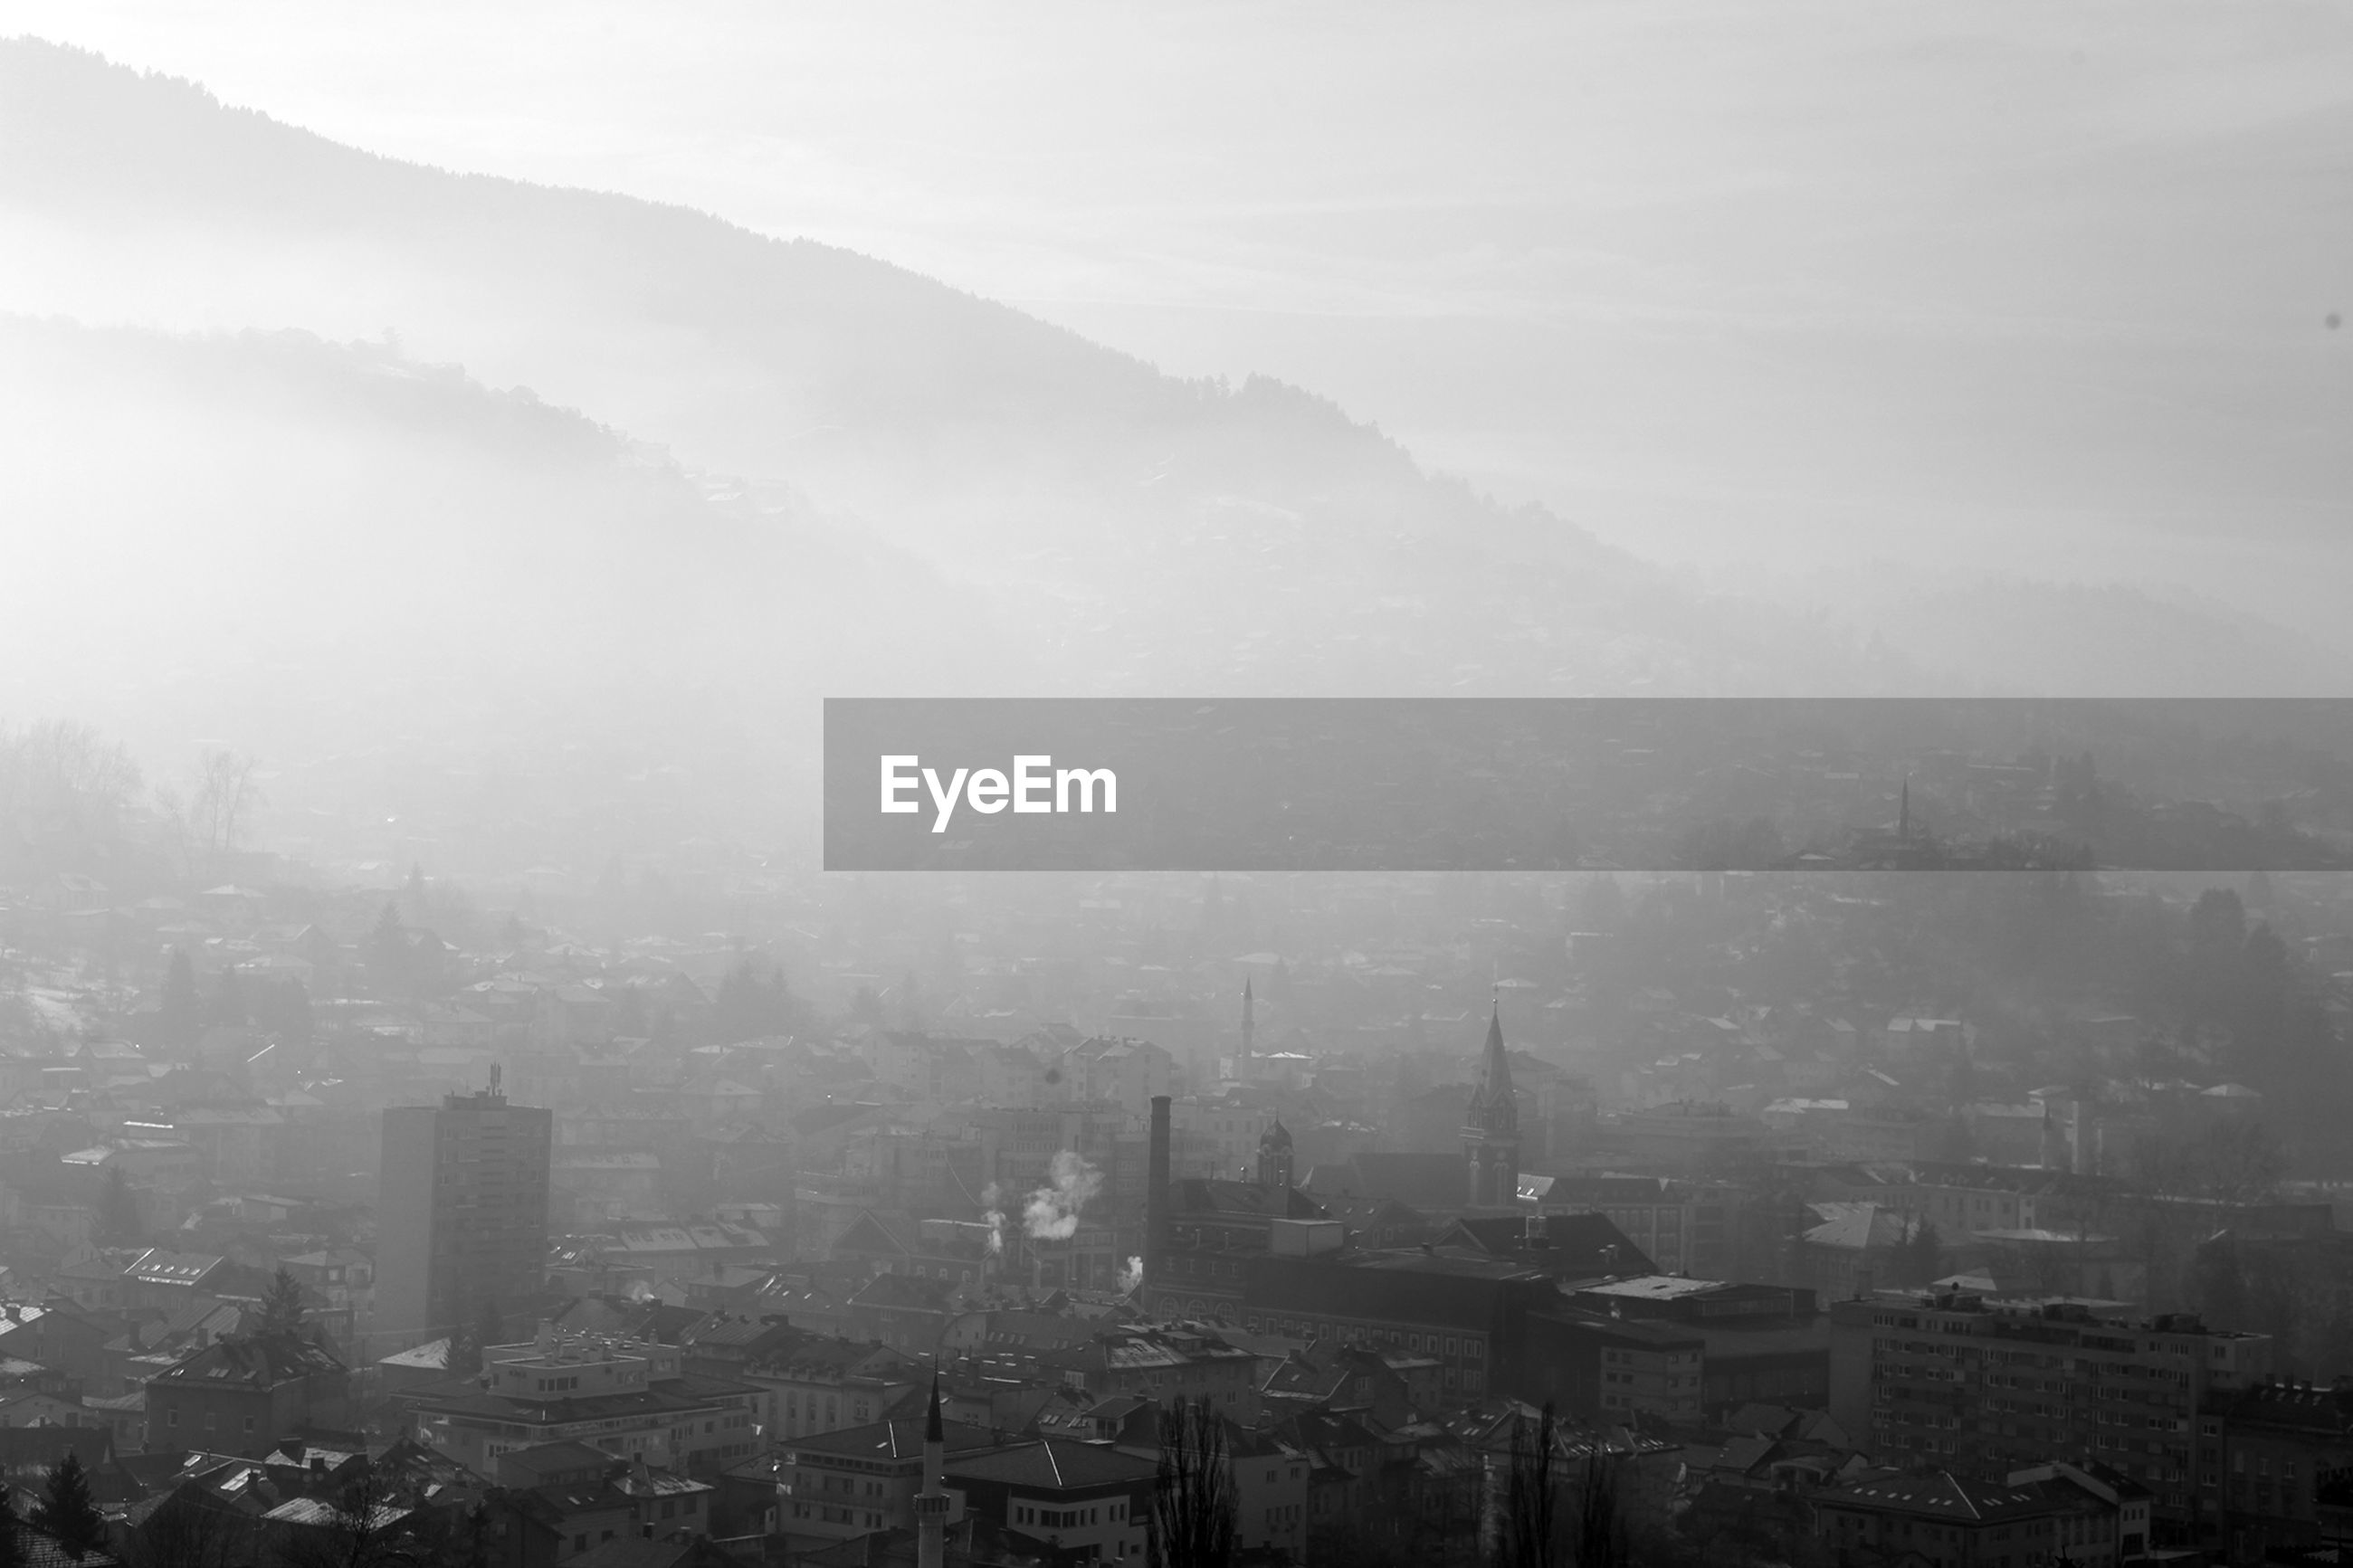 HIGH ANGLE VIEW OF BUILDINGS IN CITY DURING FOGGY WEATHER